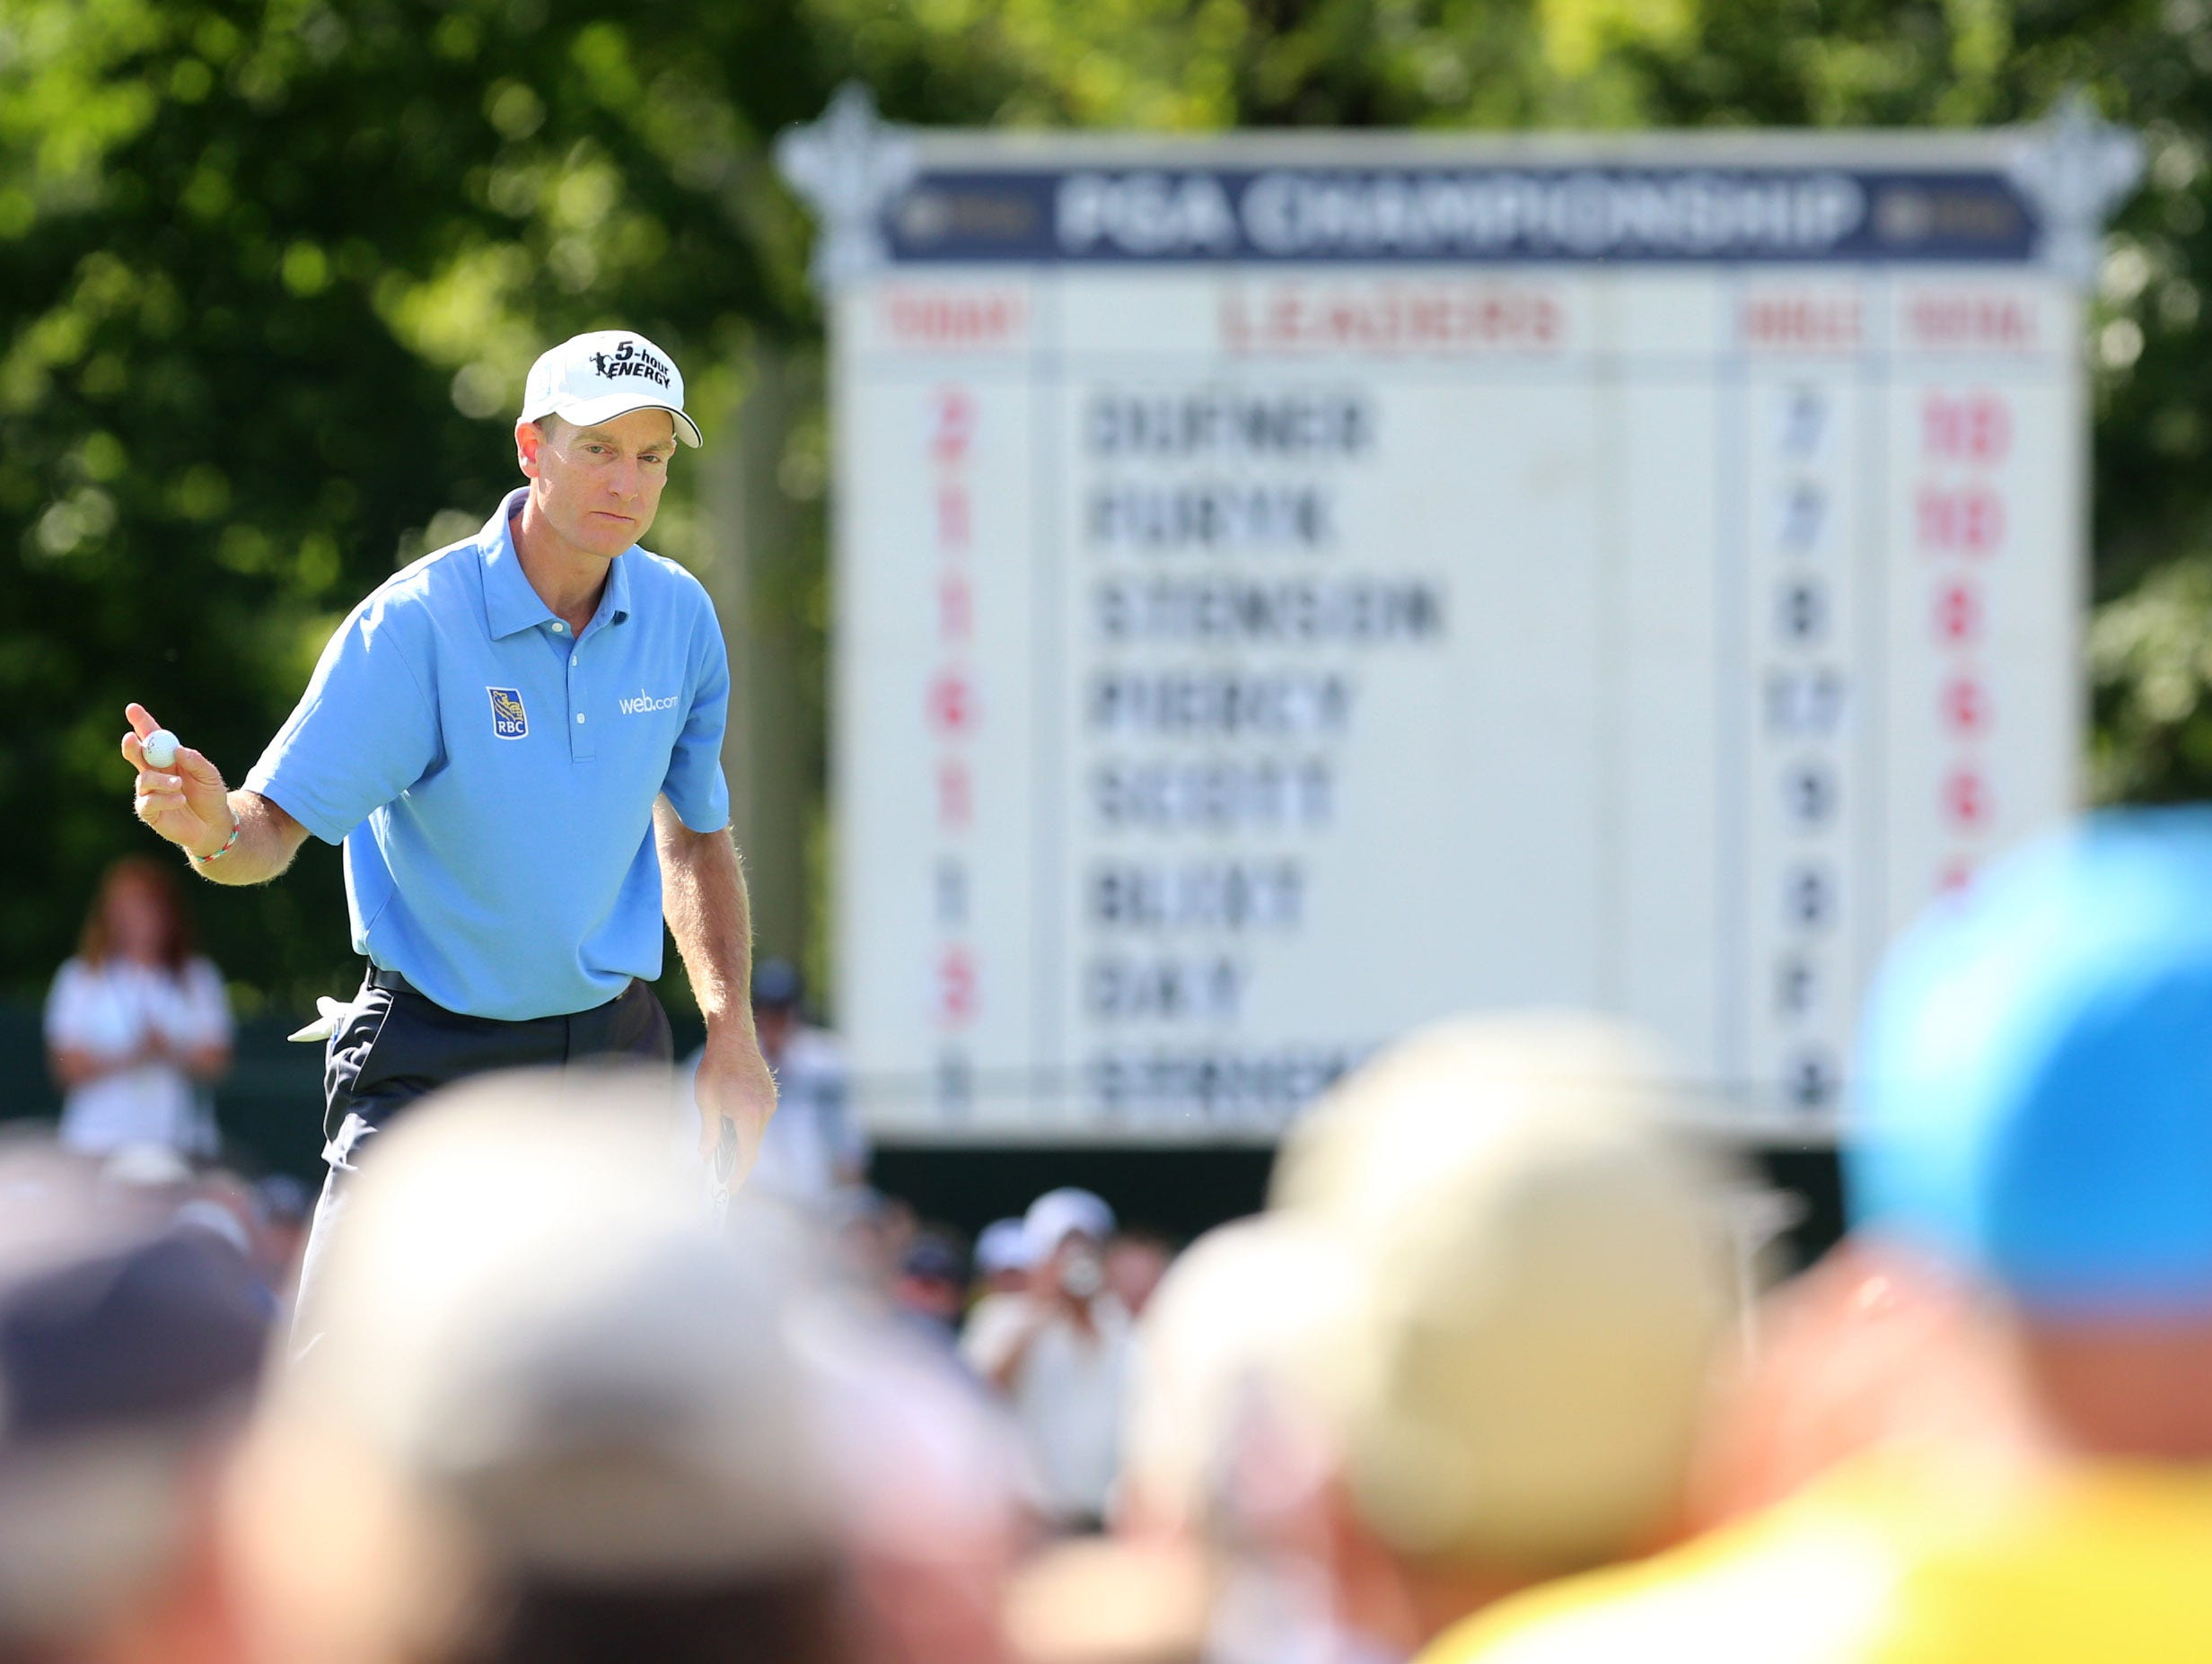 Jim Furyk waves to the gallery after putting out on the No. 8 hole.